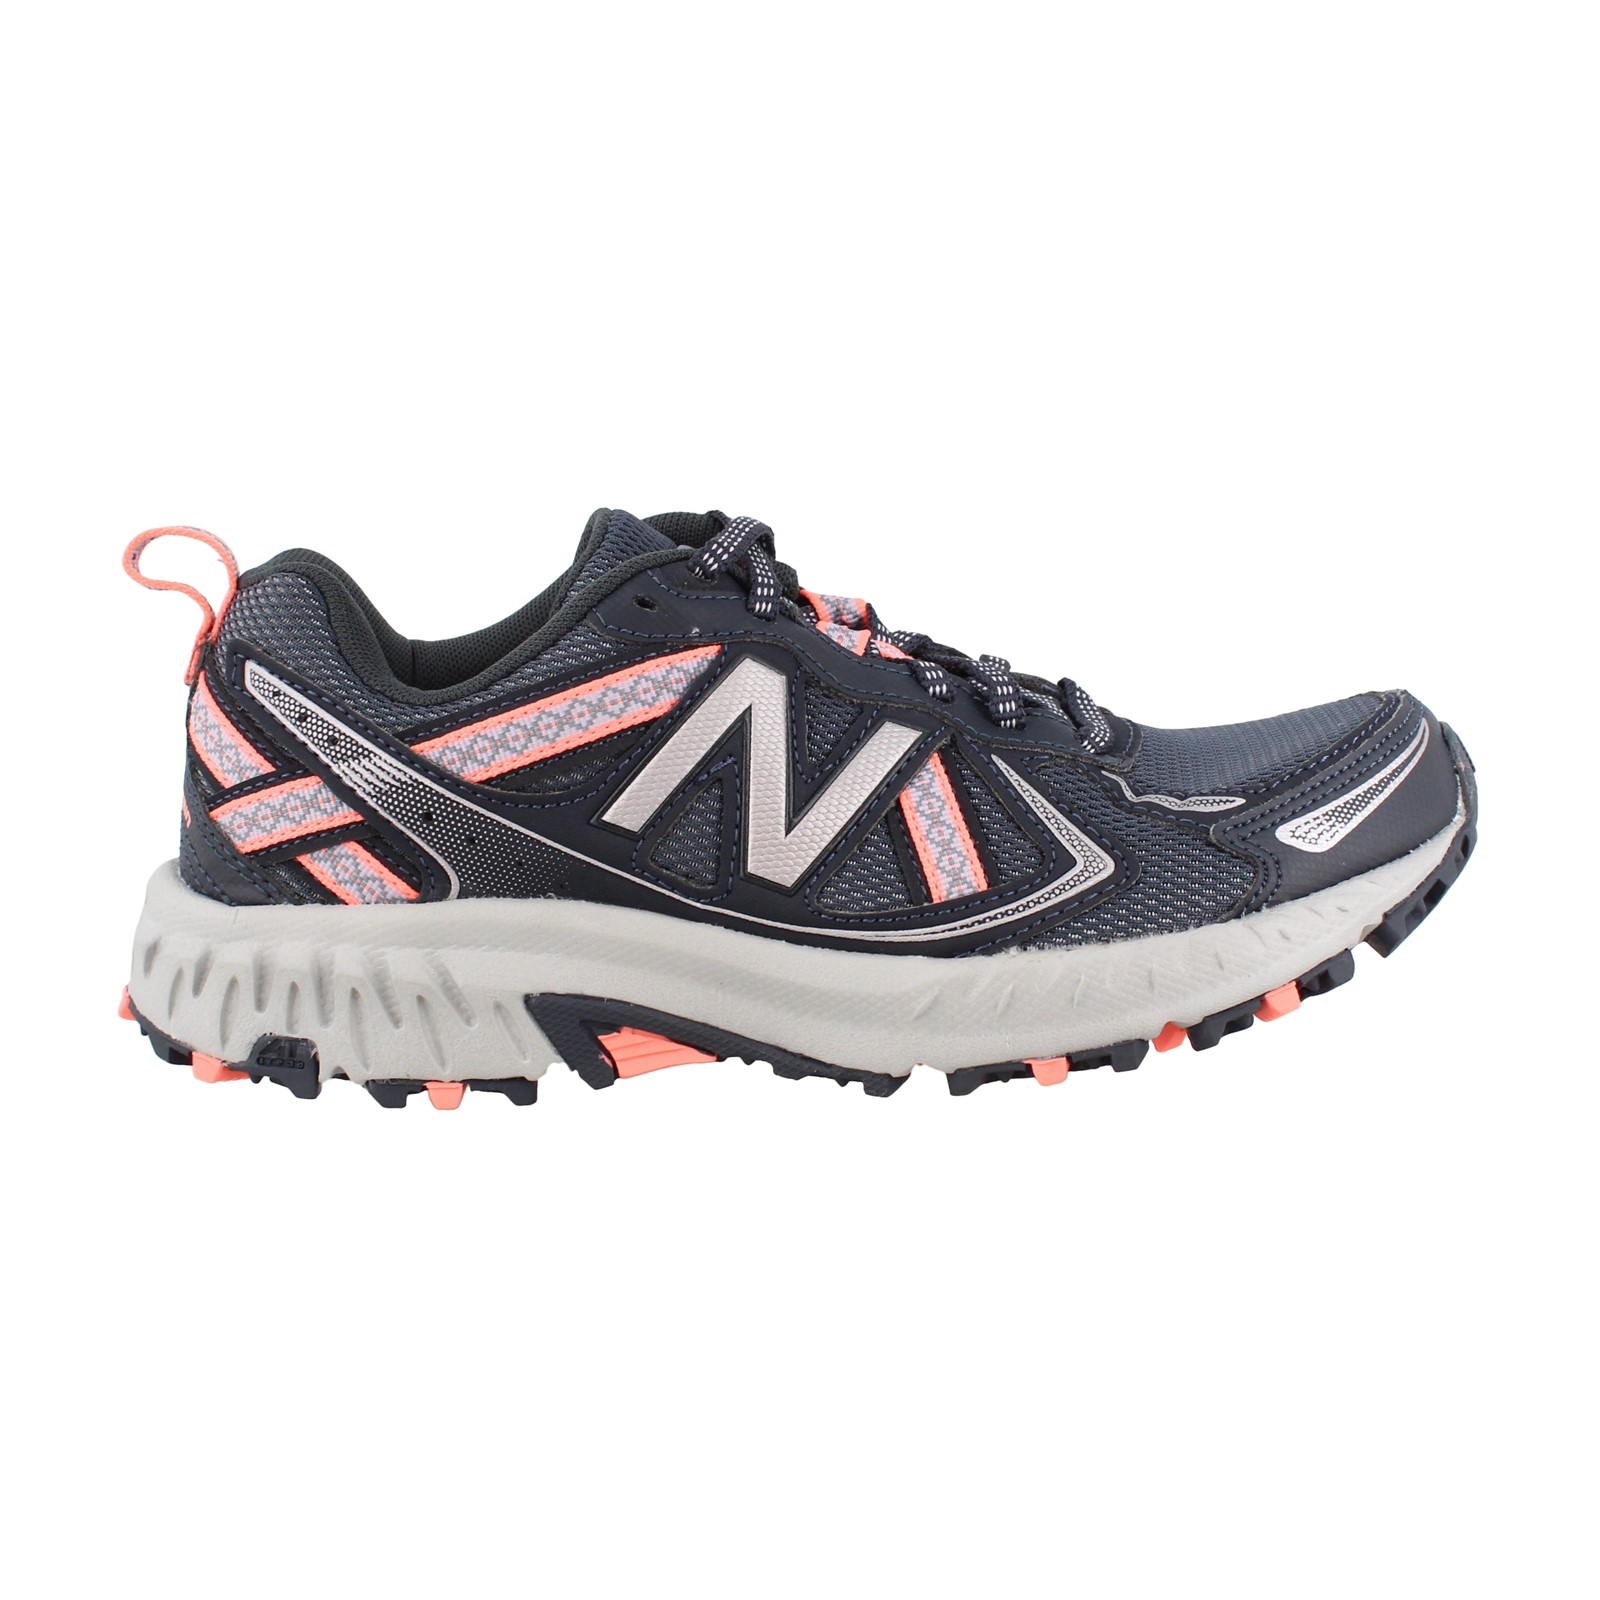 100% authentic 1e7a8 1edec Women's New Balance, 410v5 Trail Running Sneakers